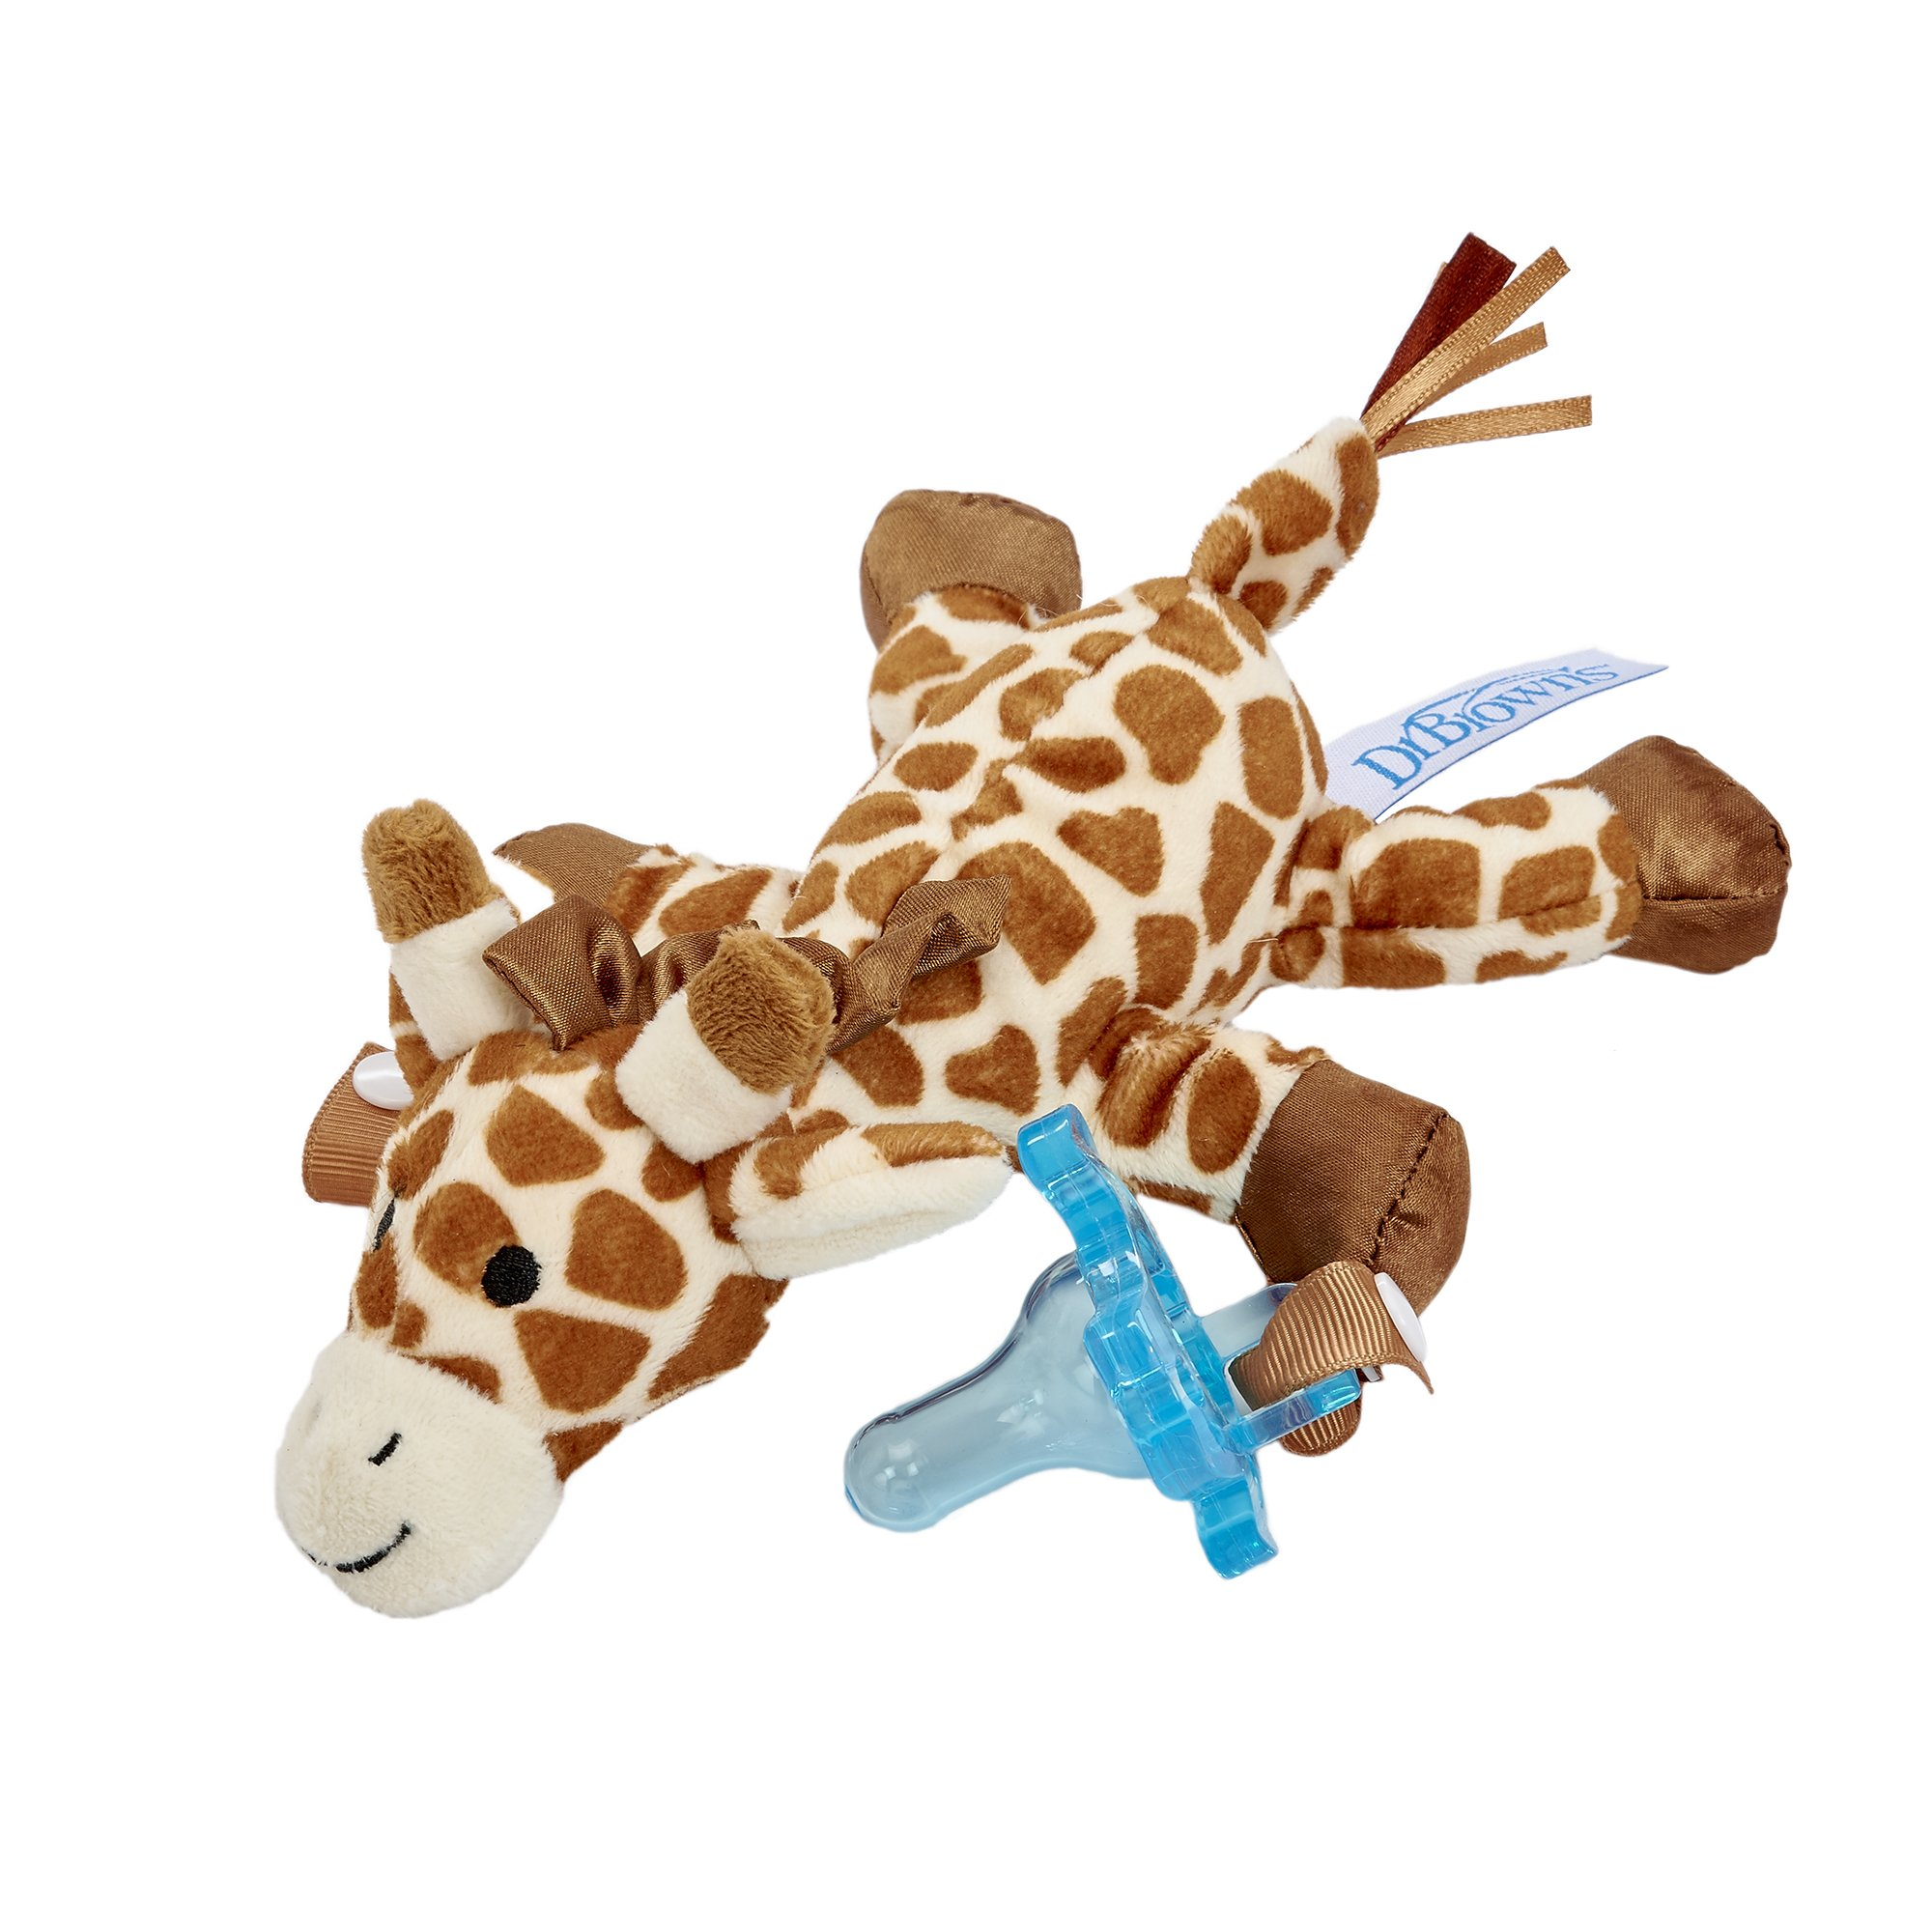 dr brown s lovey pacifier and teether holder gerry